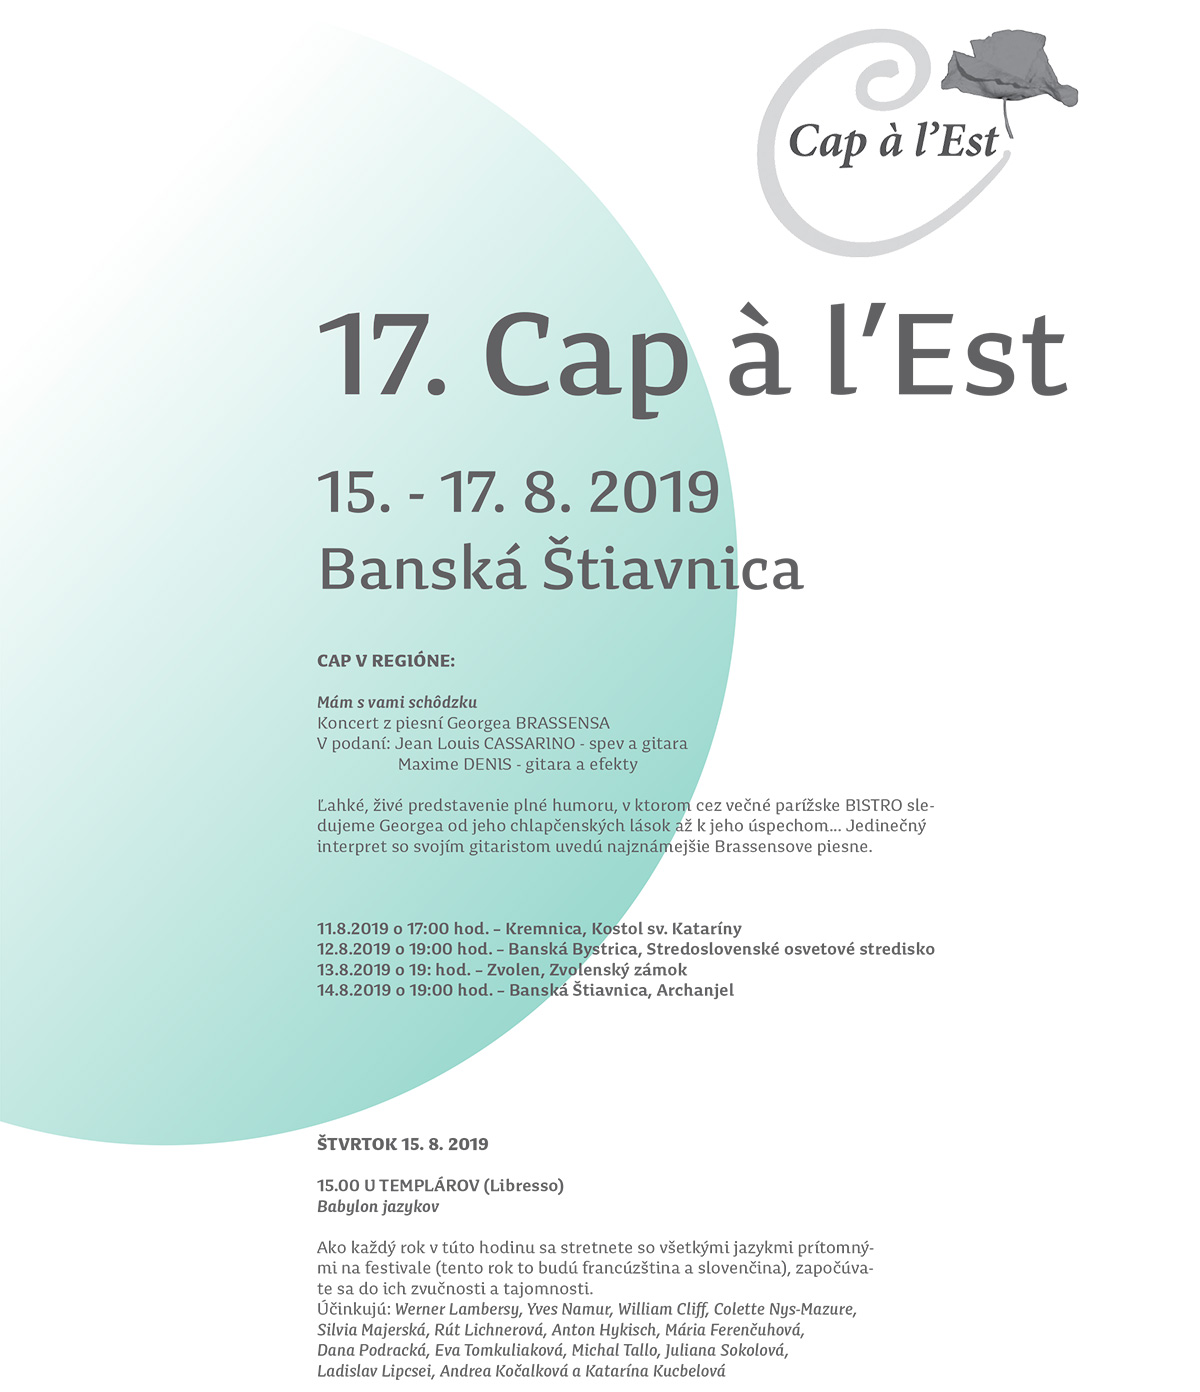 Capalest 2019